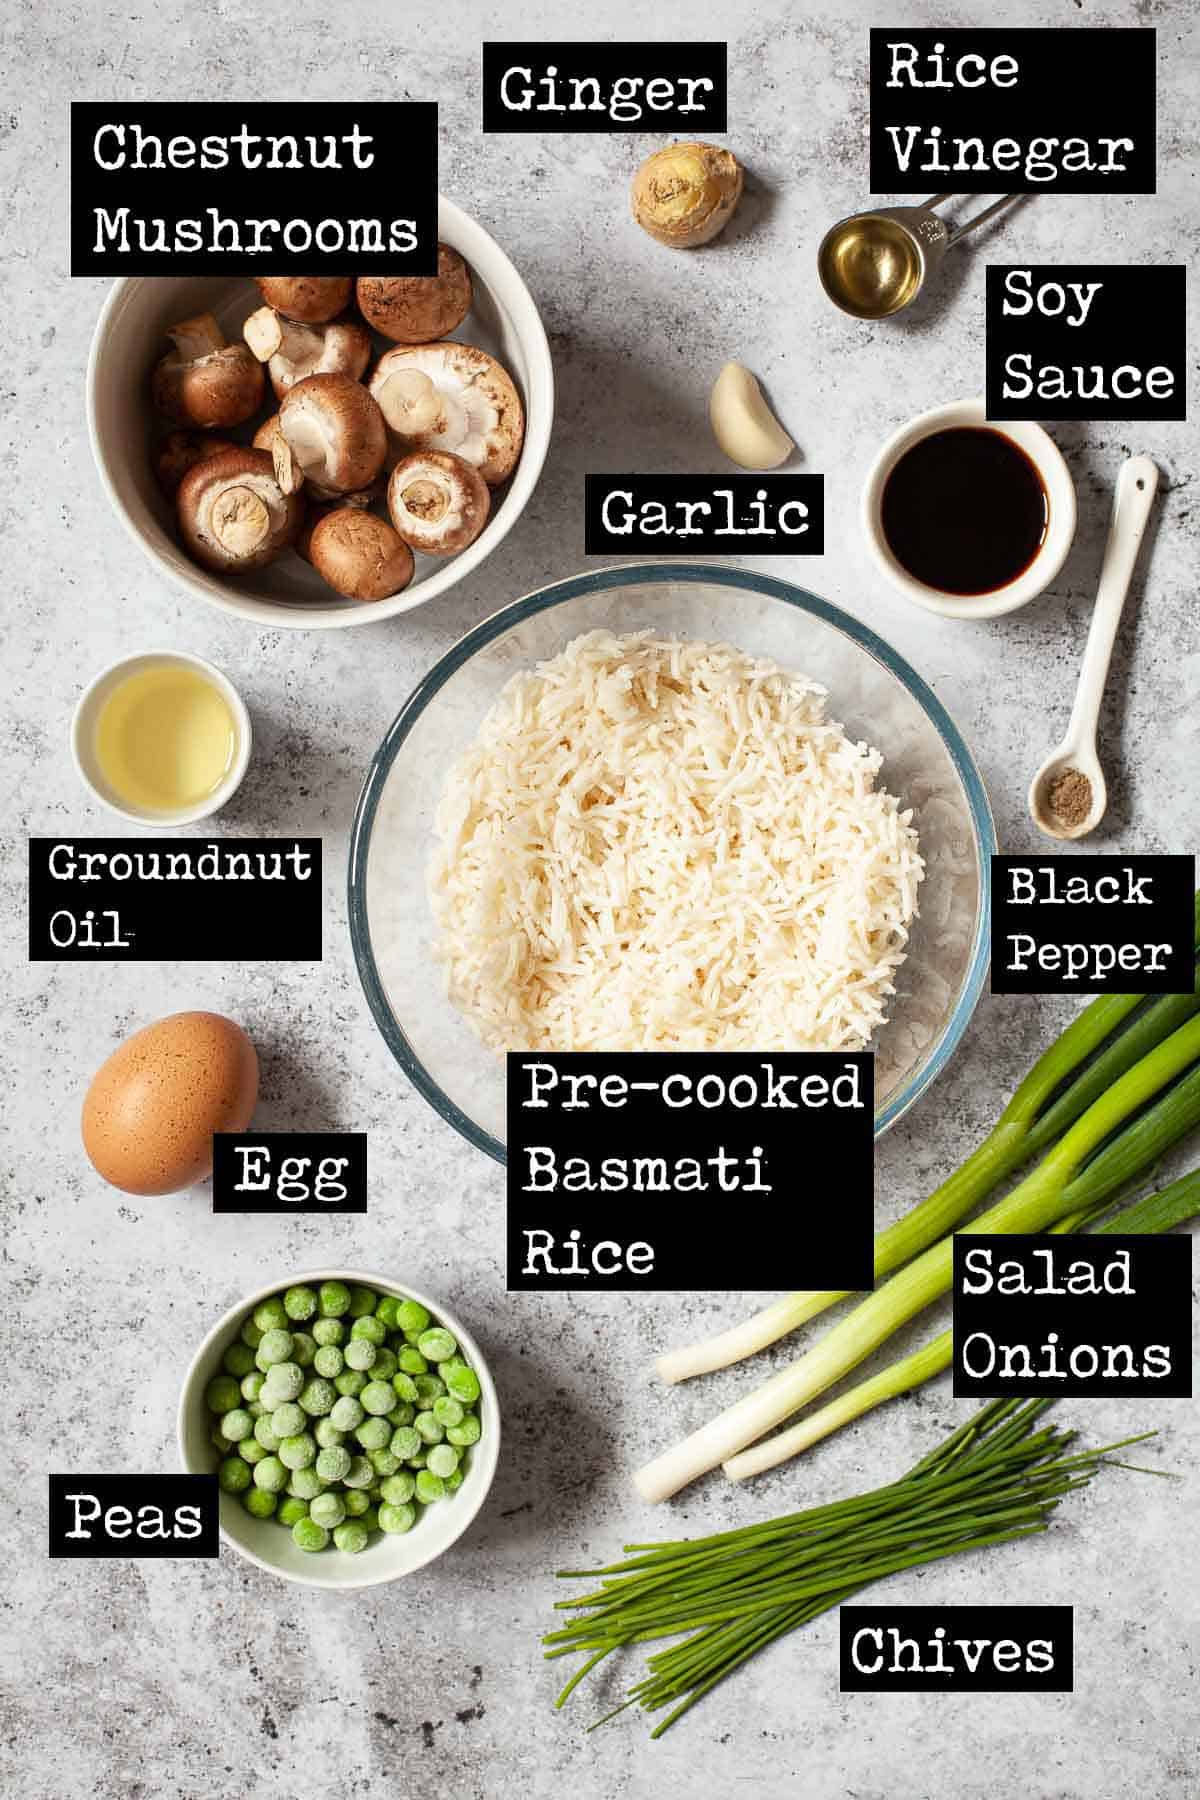 Ingredients for a vegetable rice recipe with text overlay